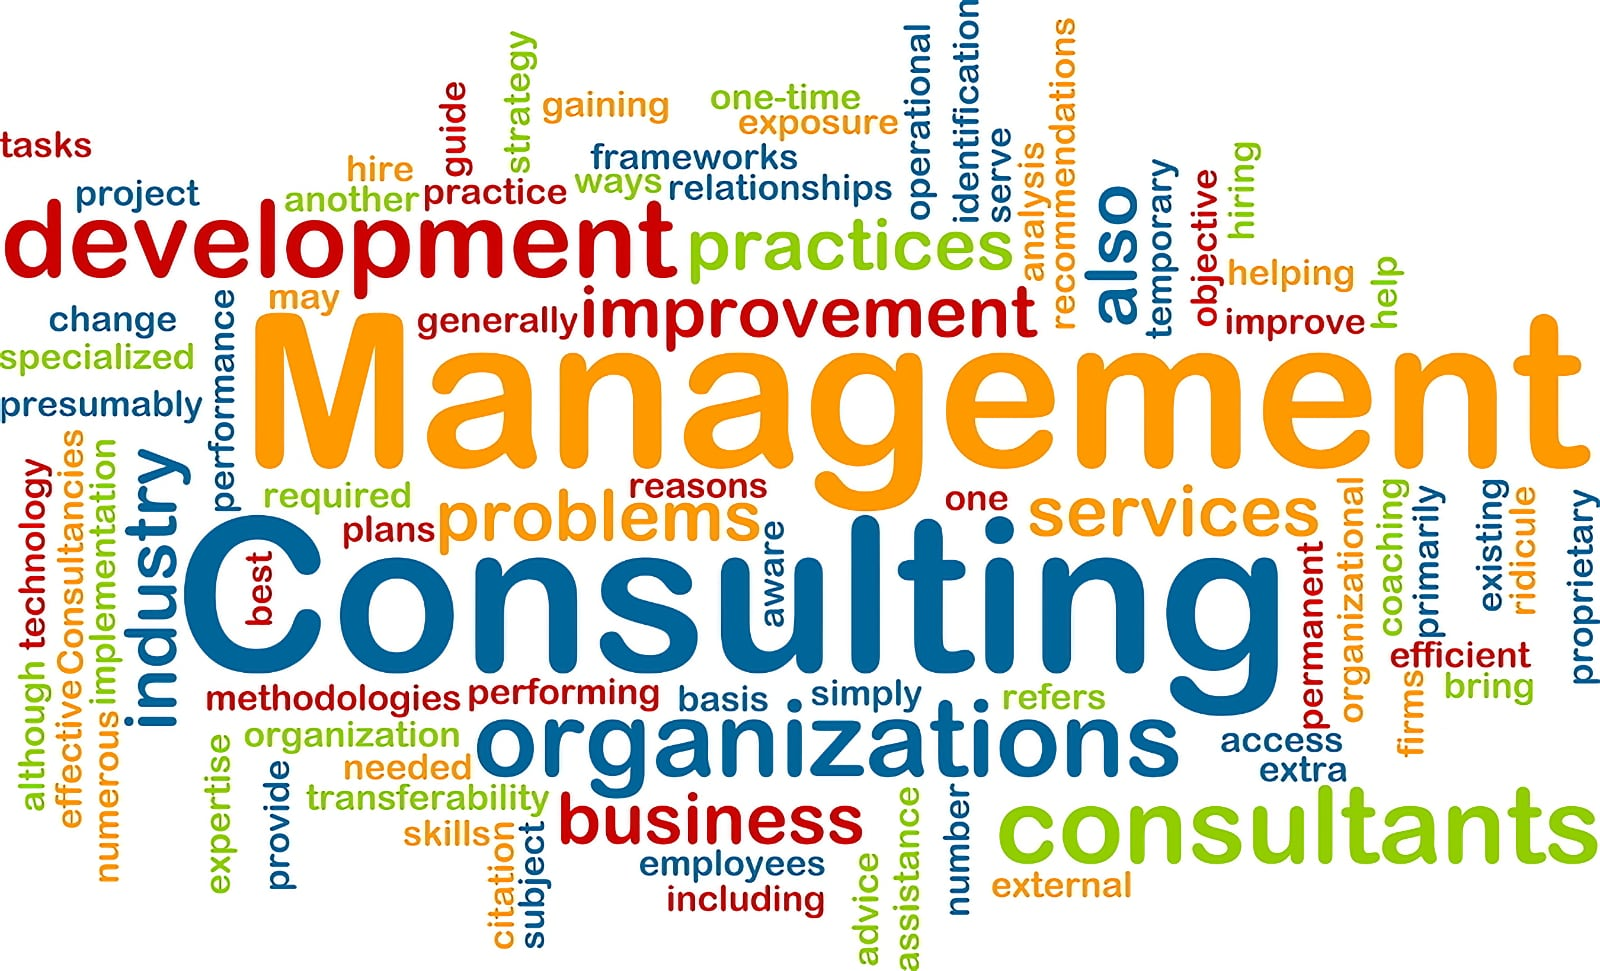 Word cloud centred on the phrase Management Consulting, including additional various other related words